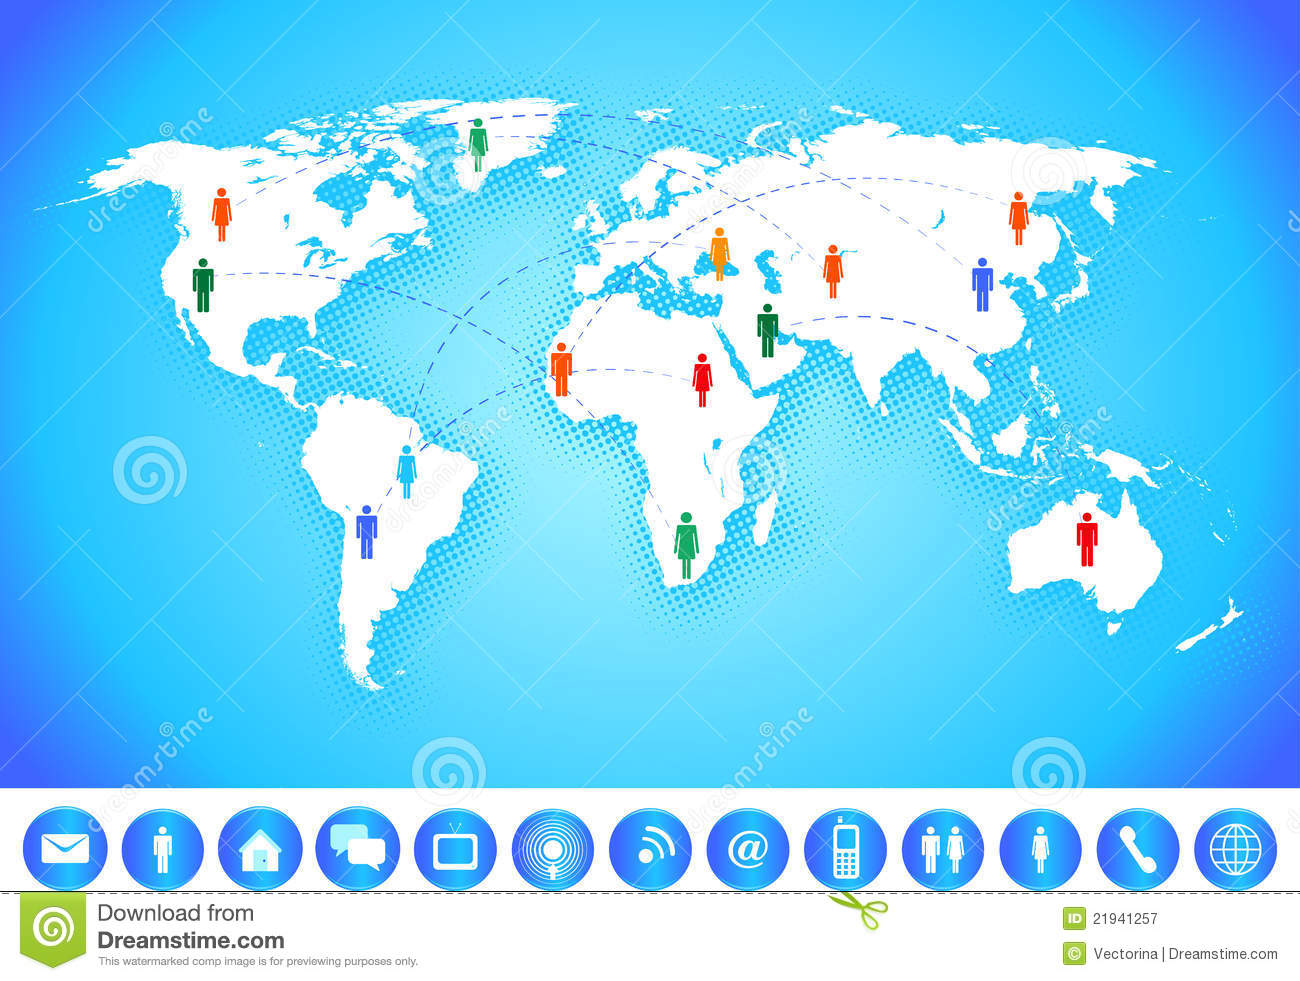 world map communication. world map communication stock vector illustration of